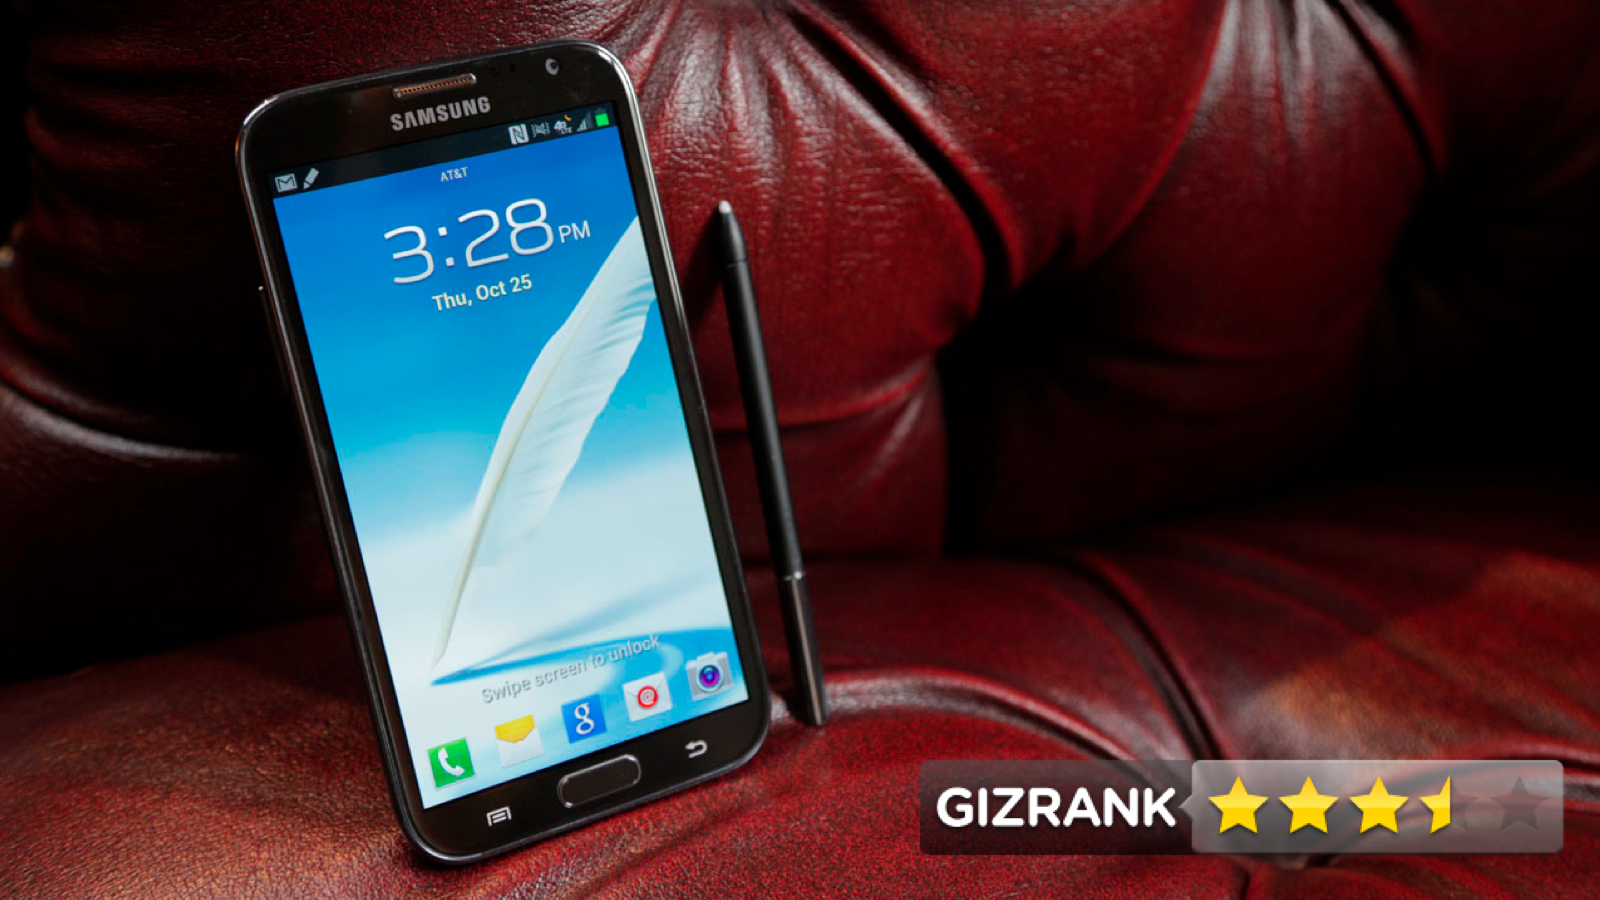 Click here to read Galaxy Note II Review: Bigger Got a Lot Better